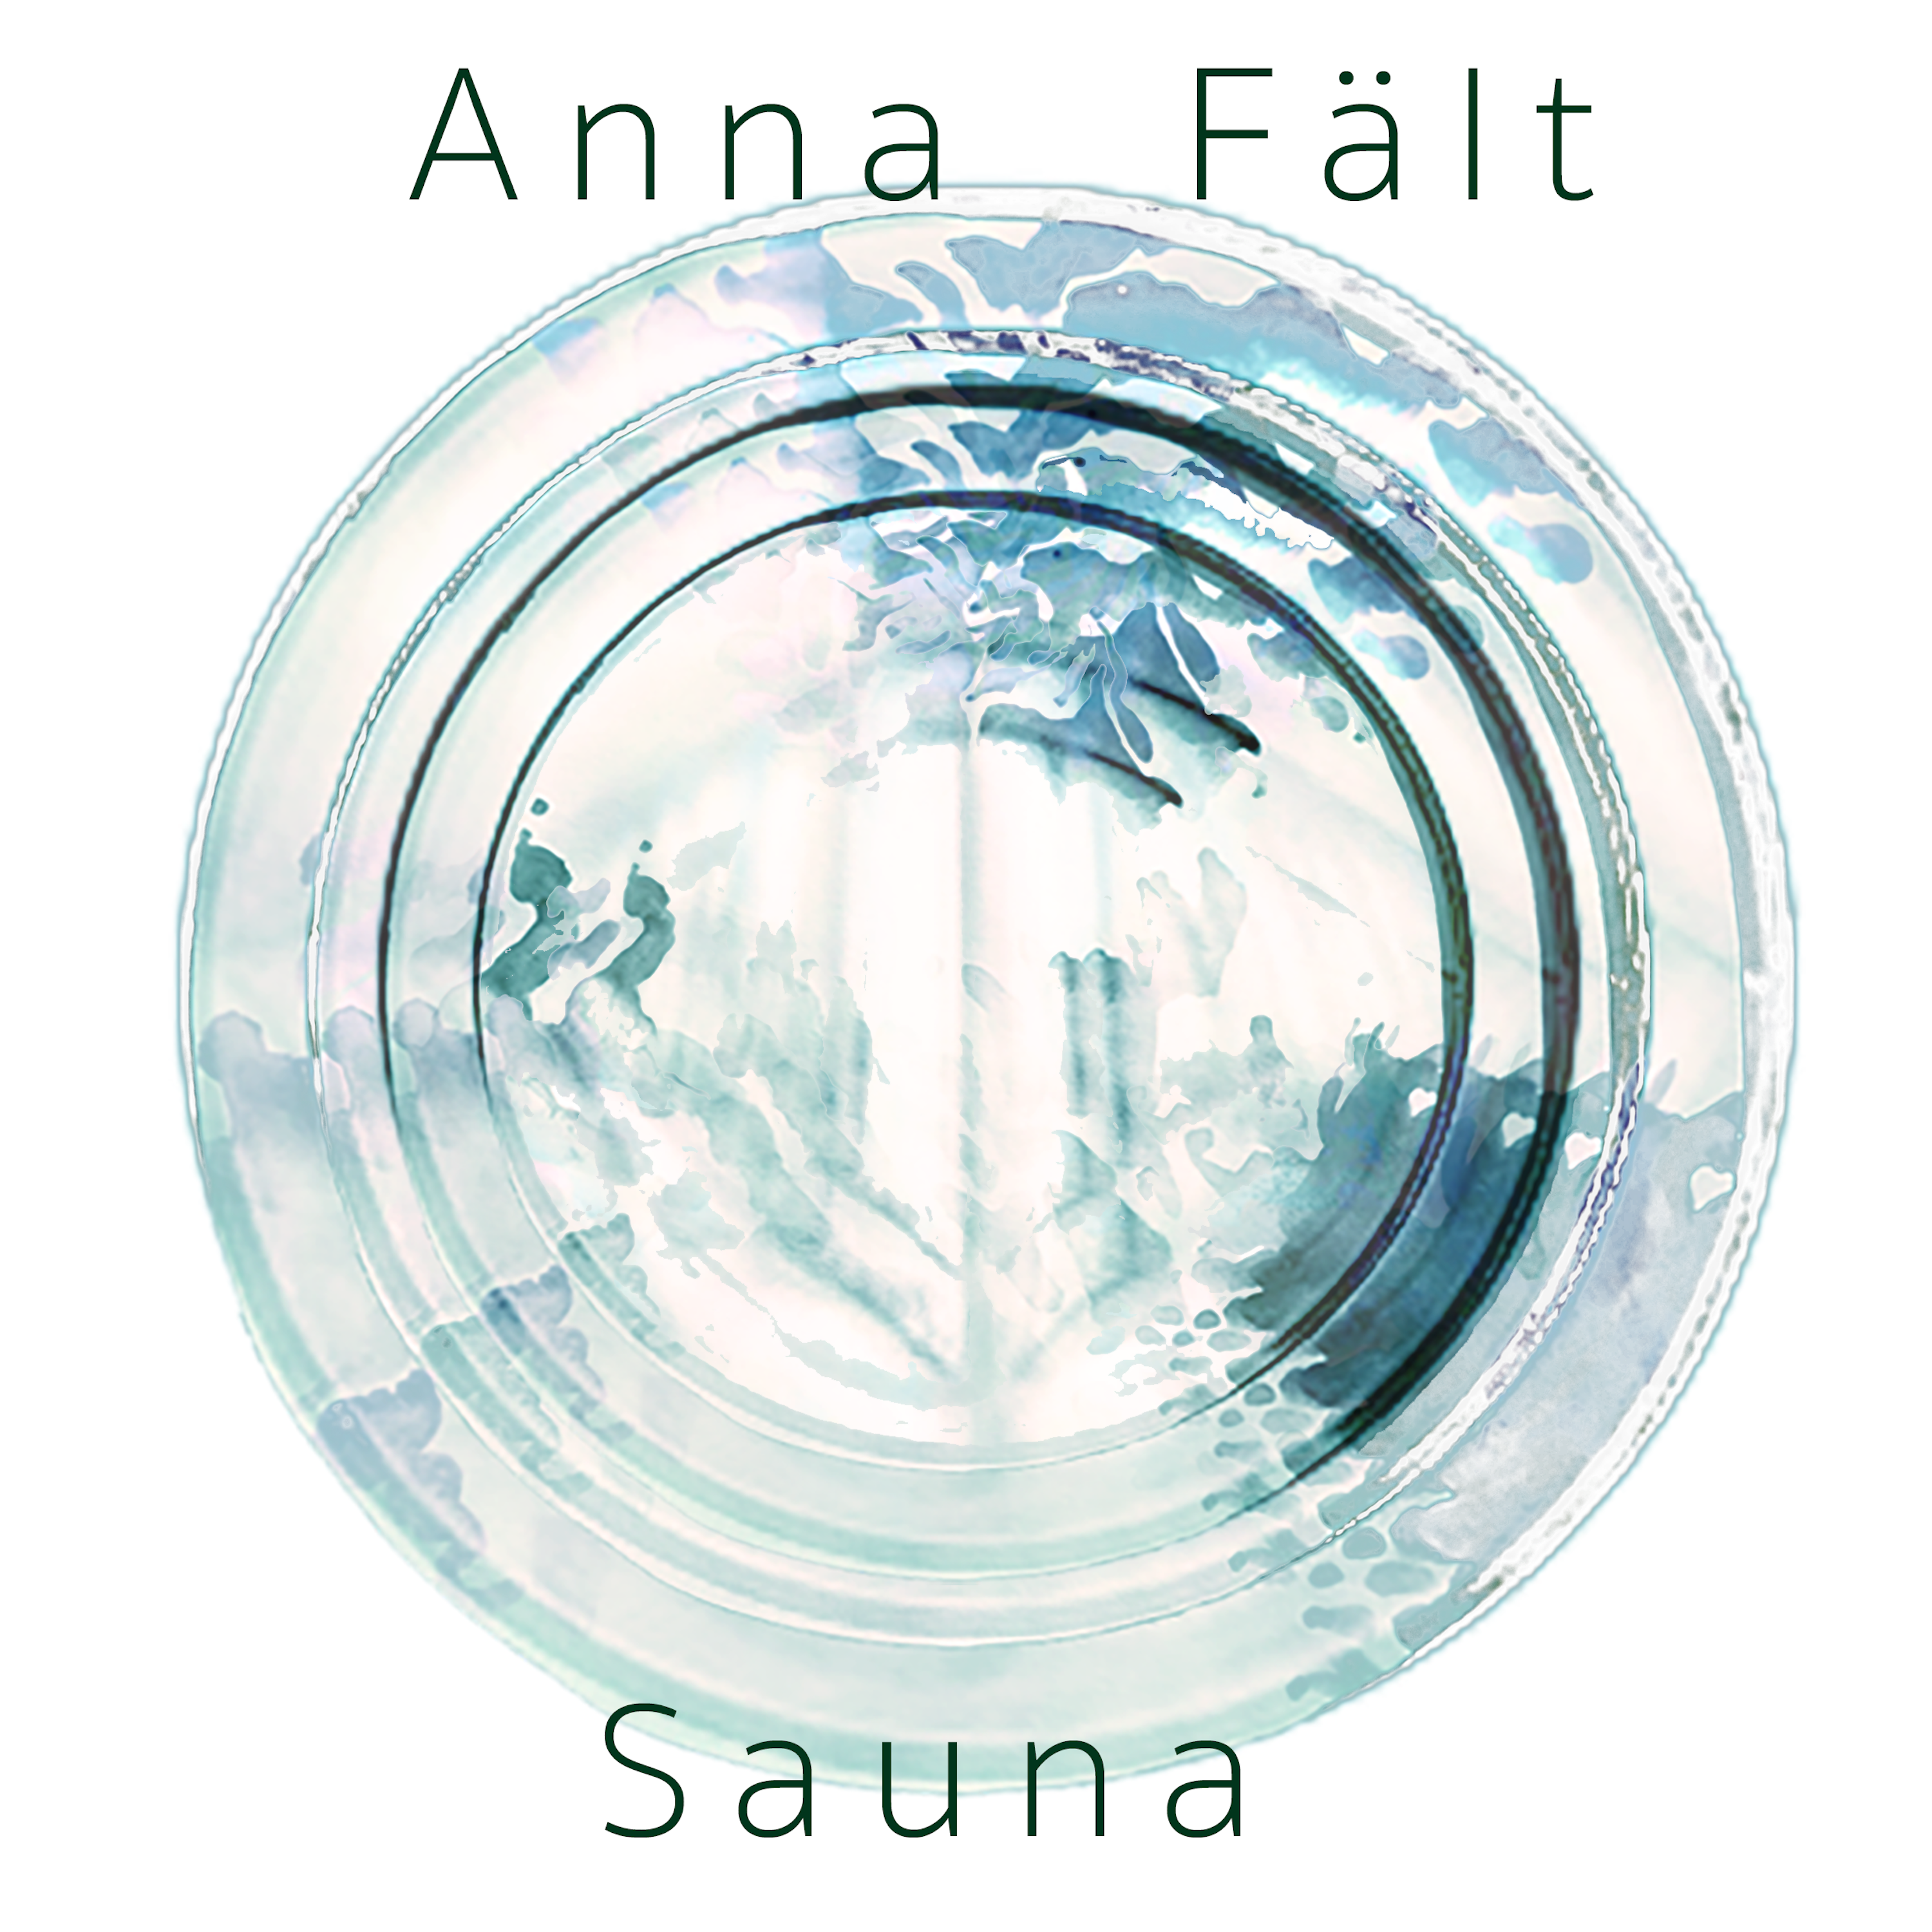 Anna Fält – Sauna (Single). Available at your favourite download or streaming service. monophon © 2018 (MPHSG002)